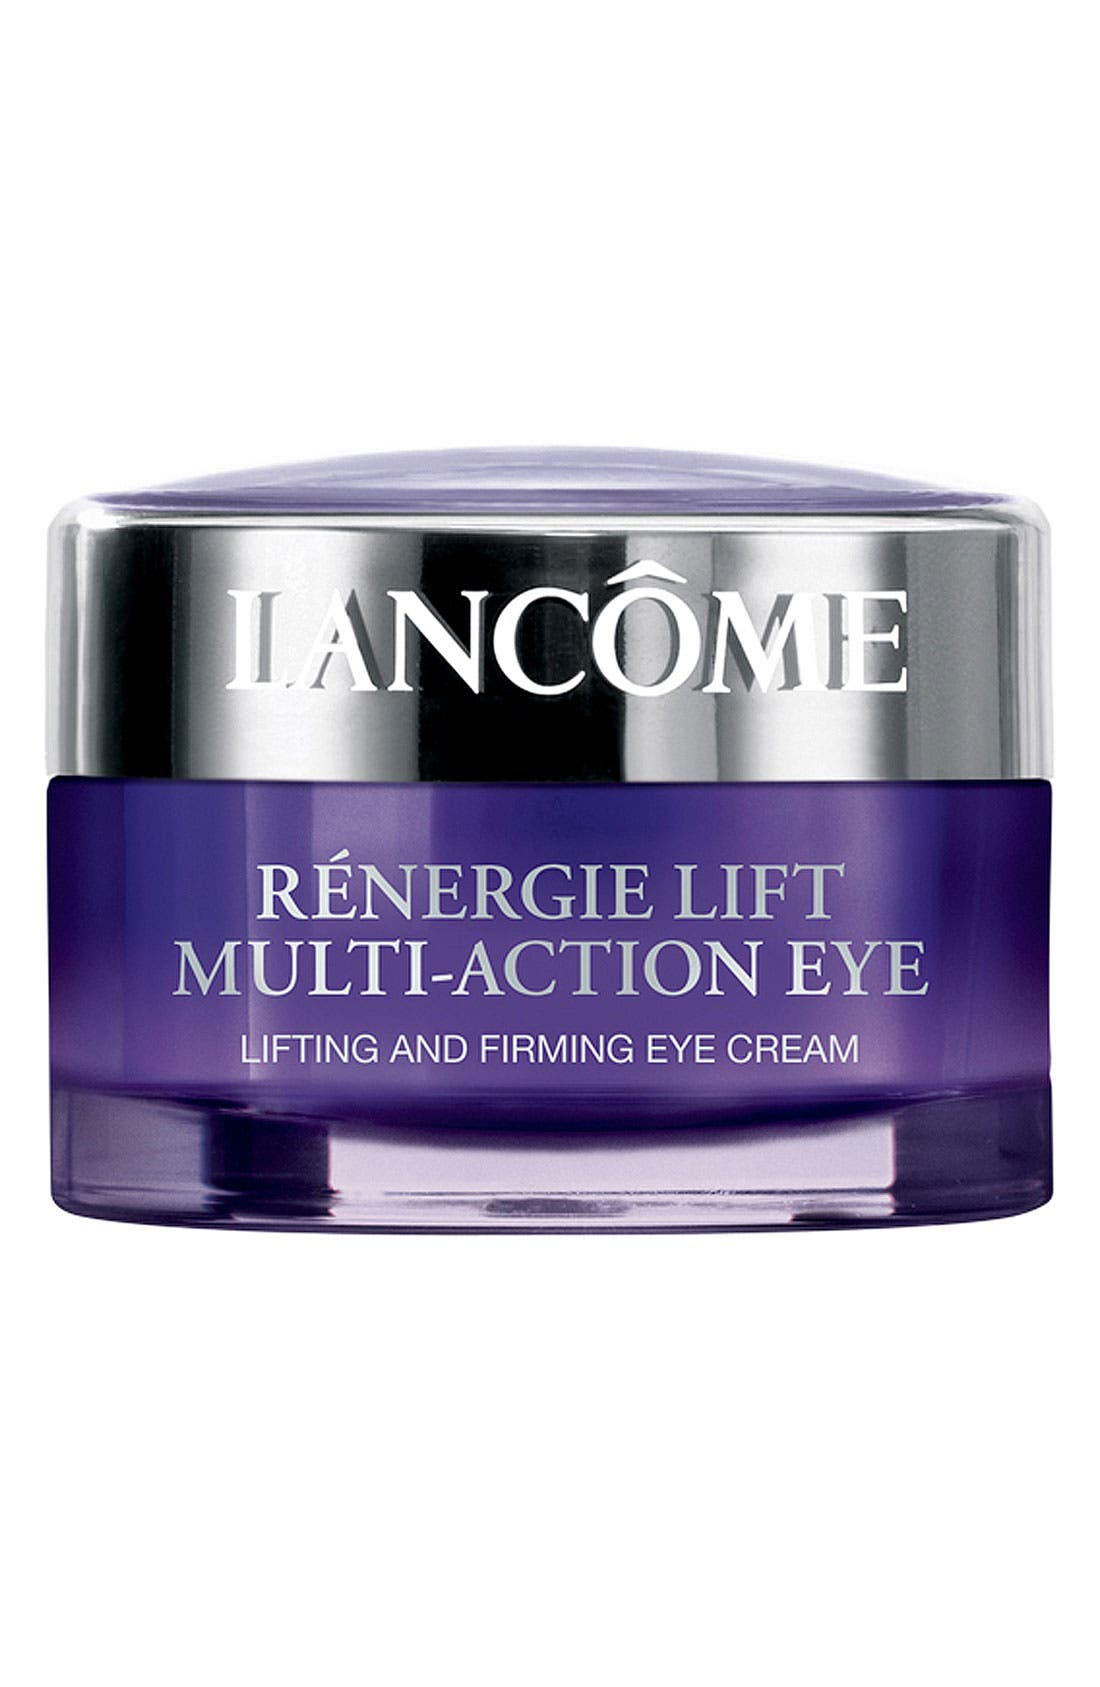 Lancôme Rénergie Lift Multi-Action Lifting and Firming Eye Cream